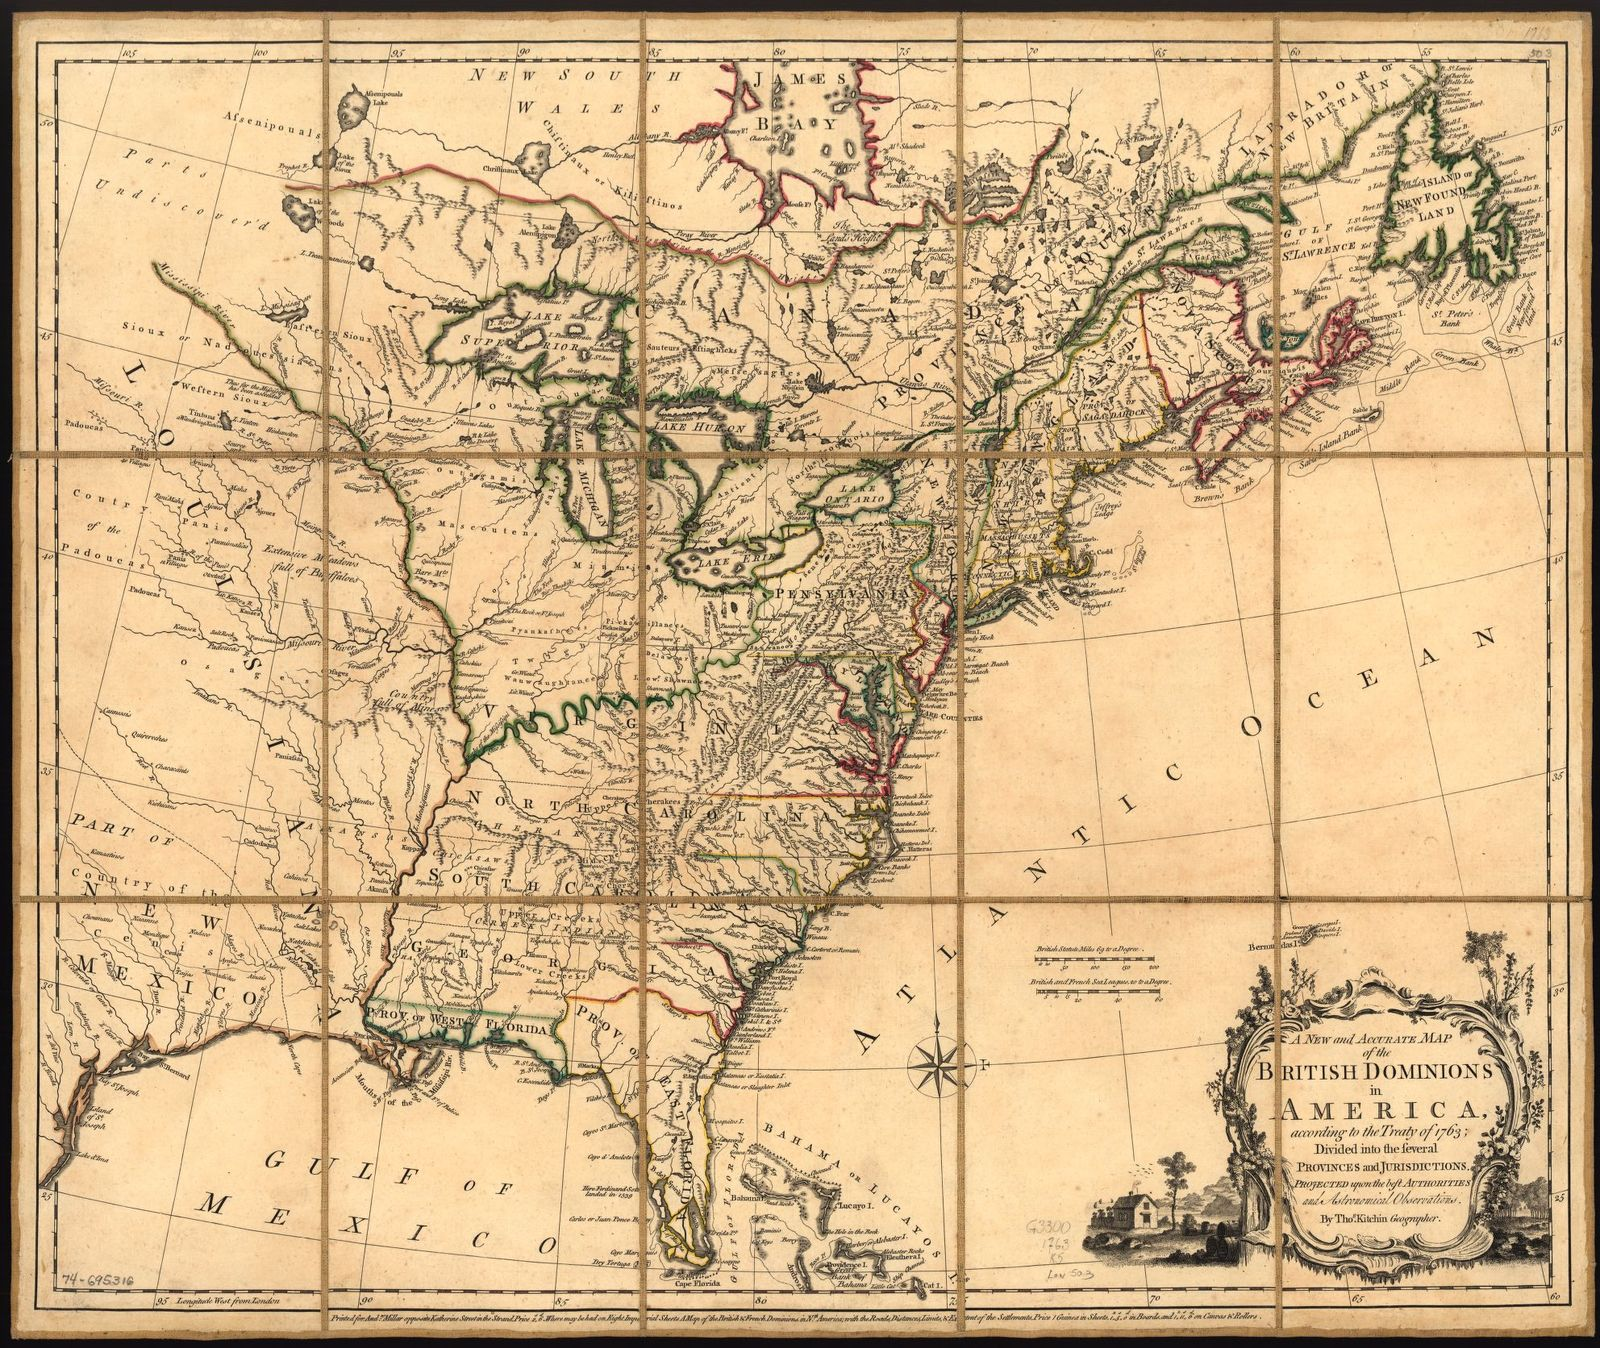 A new and accurate map of the British dominions in America, according to the treaty of 1763; divided into the several provinces and jurisdiction, Projected upon the best authorities and astronomical observations.